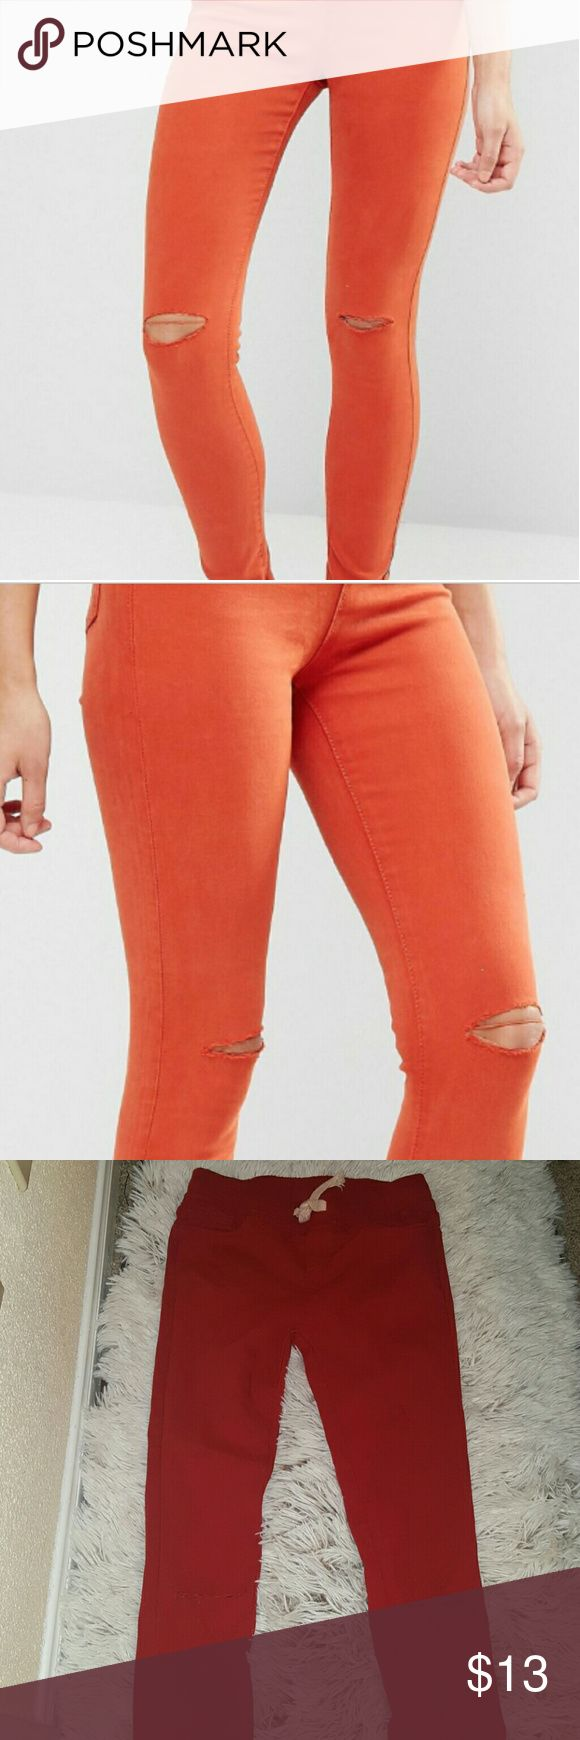 red orange skinny jeans Stretch Glamorous Skinny Jean ripped knee...the model pic is just an example of the jeans .. the original color of the jeans is red orange fashion house Pants Skinny